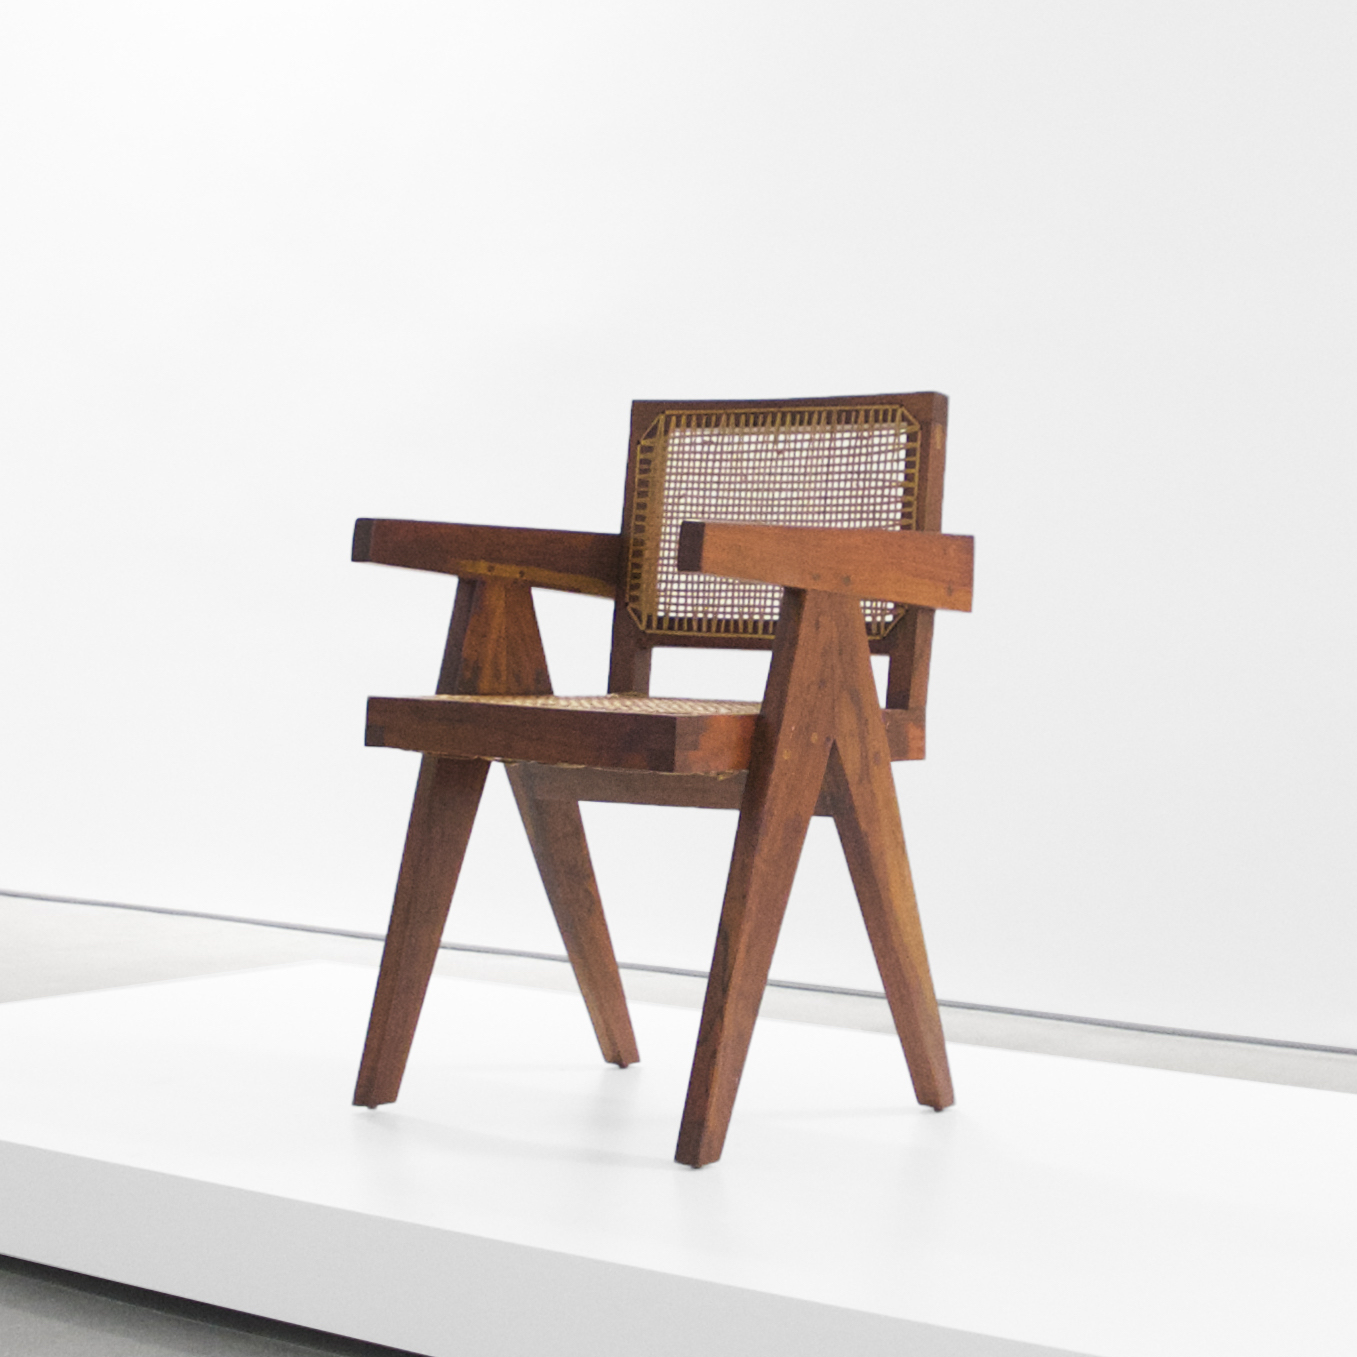 pierre jeanneret  teak conference chair from chandigarh, india  c. 1952 - 1956 ...